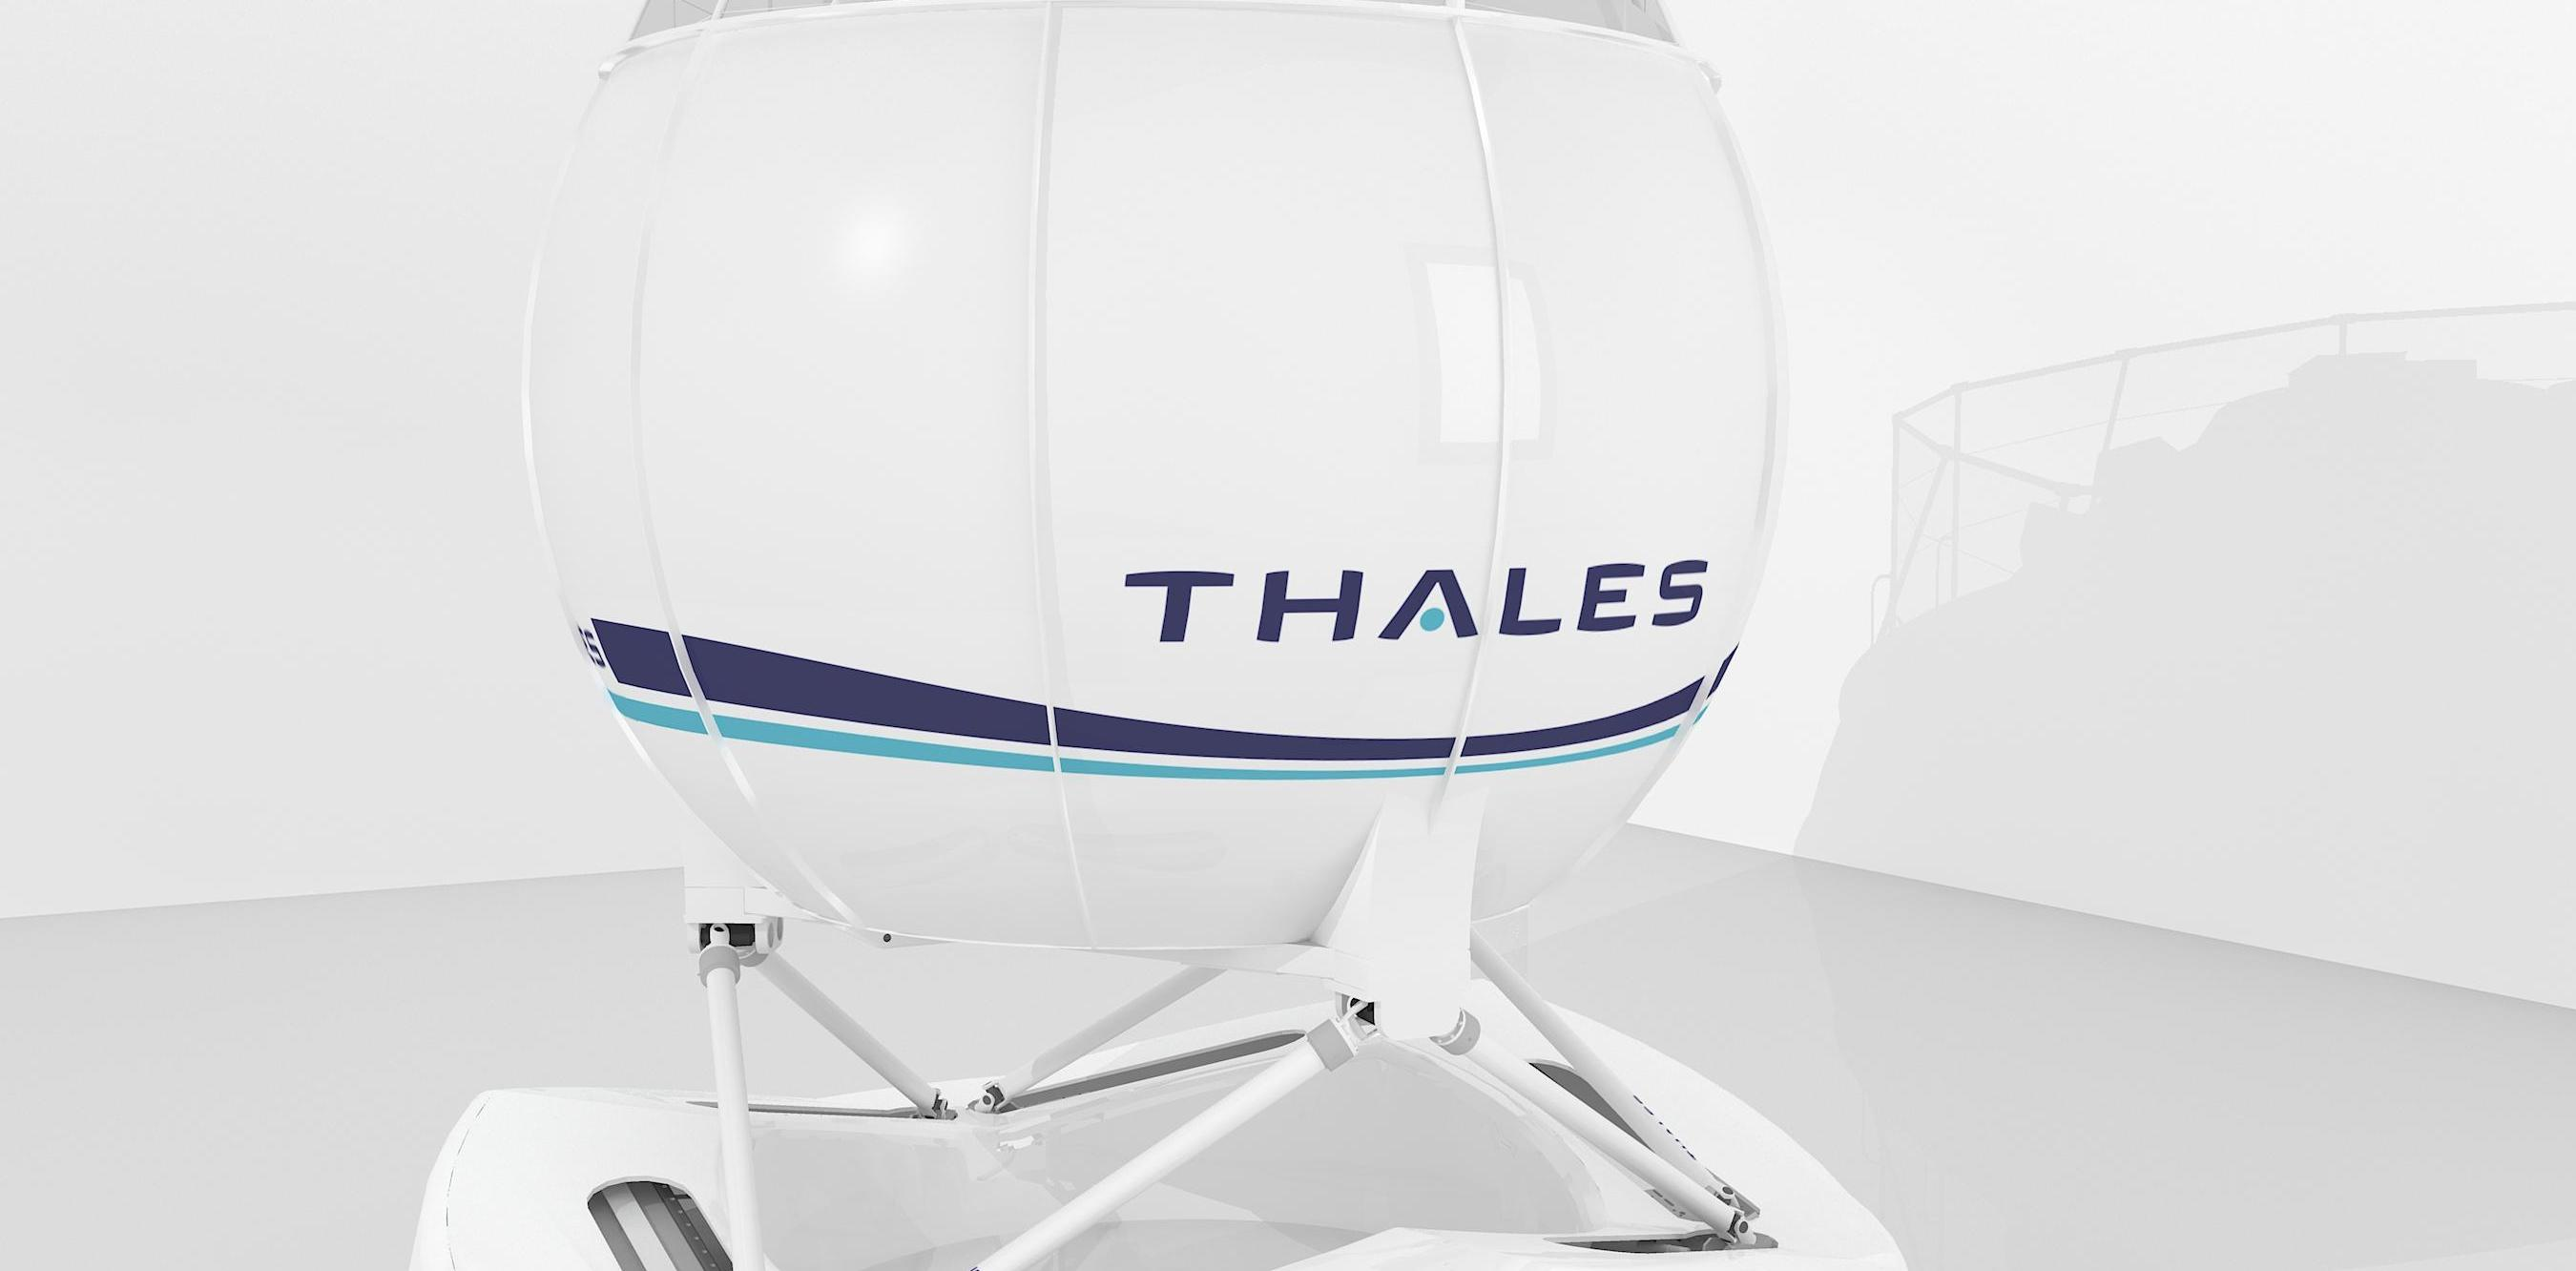 Ready to train the next generation of pilot with the new H160 simulator